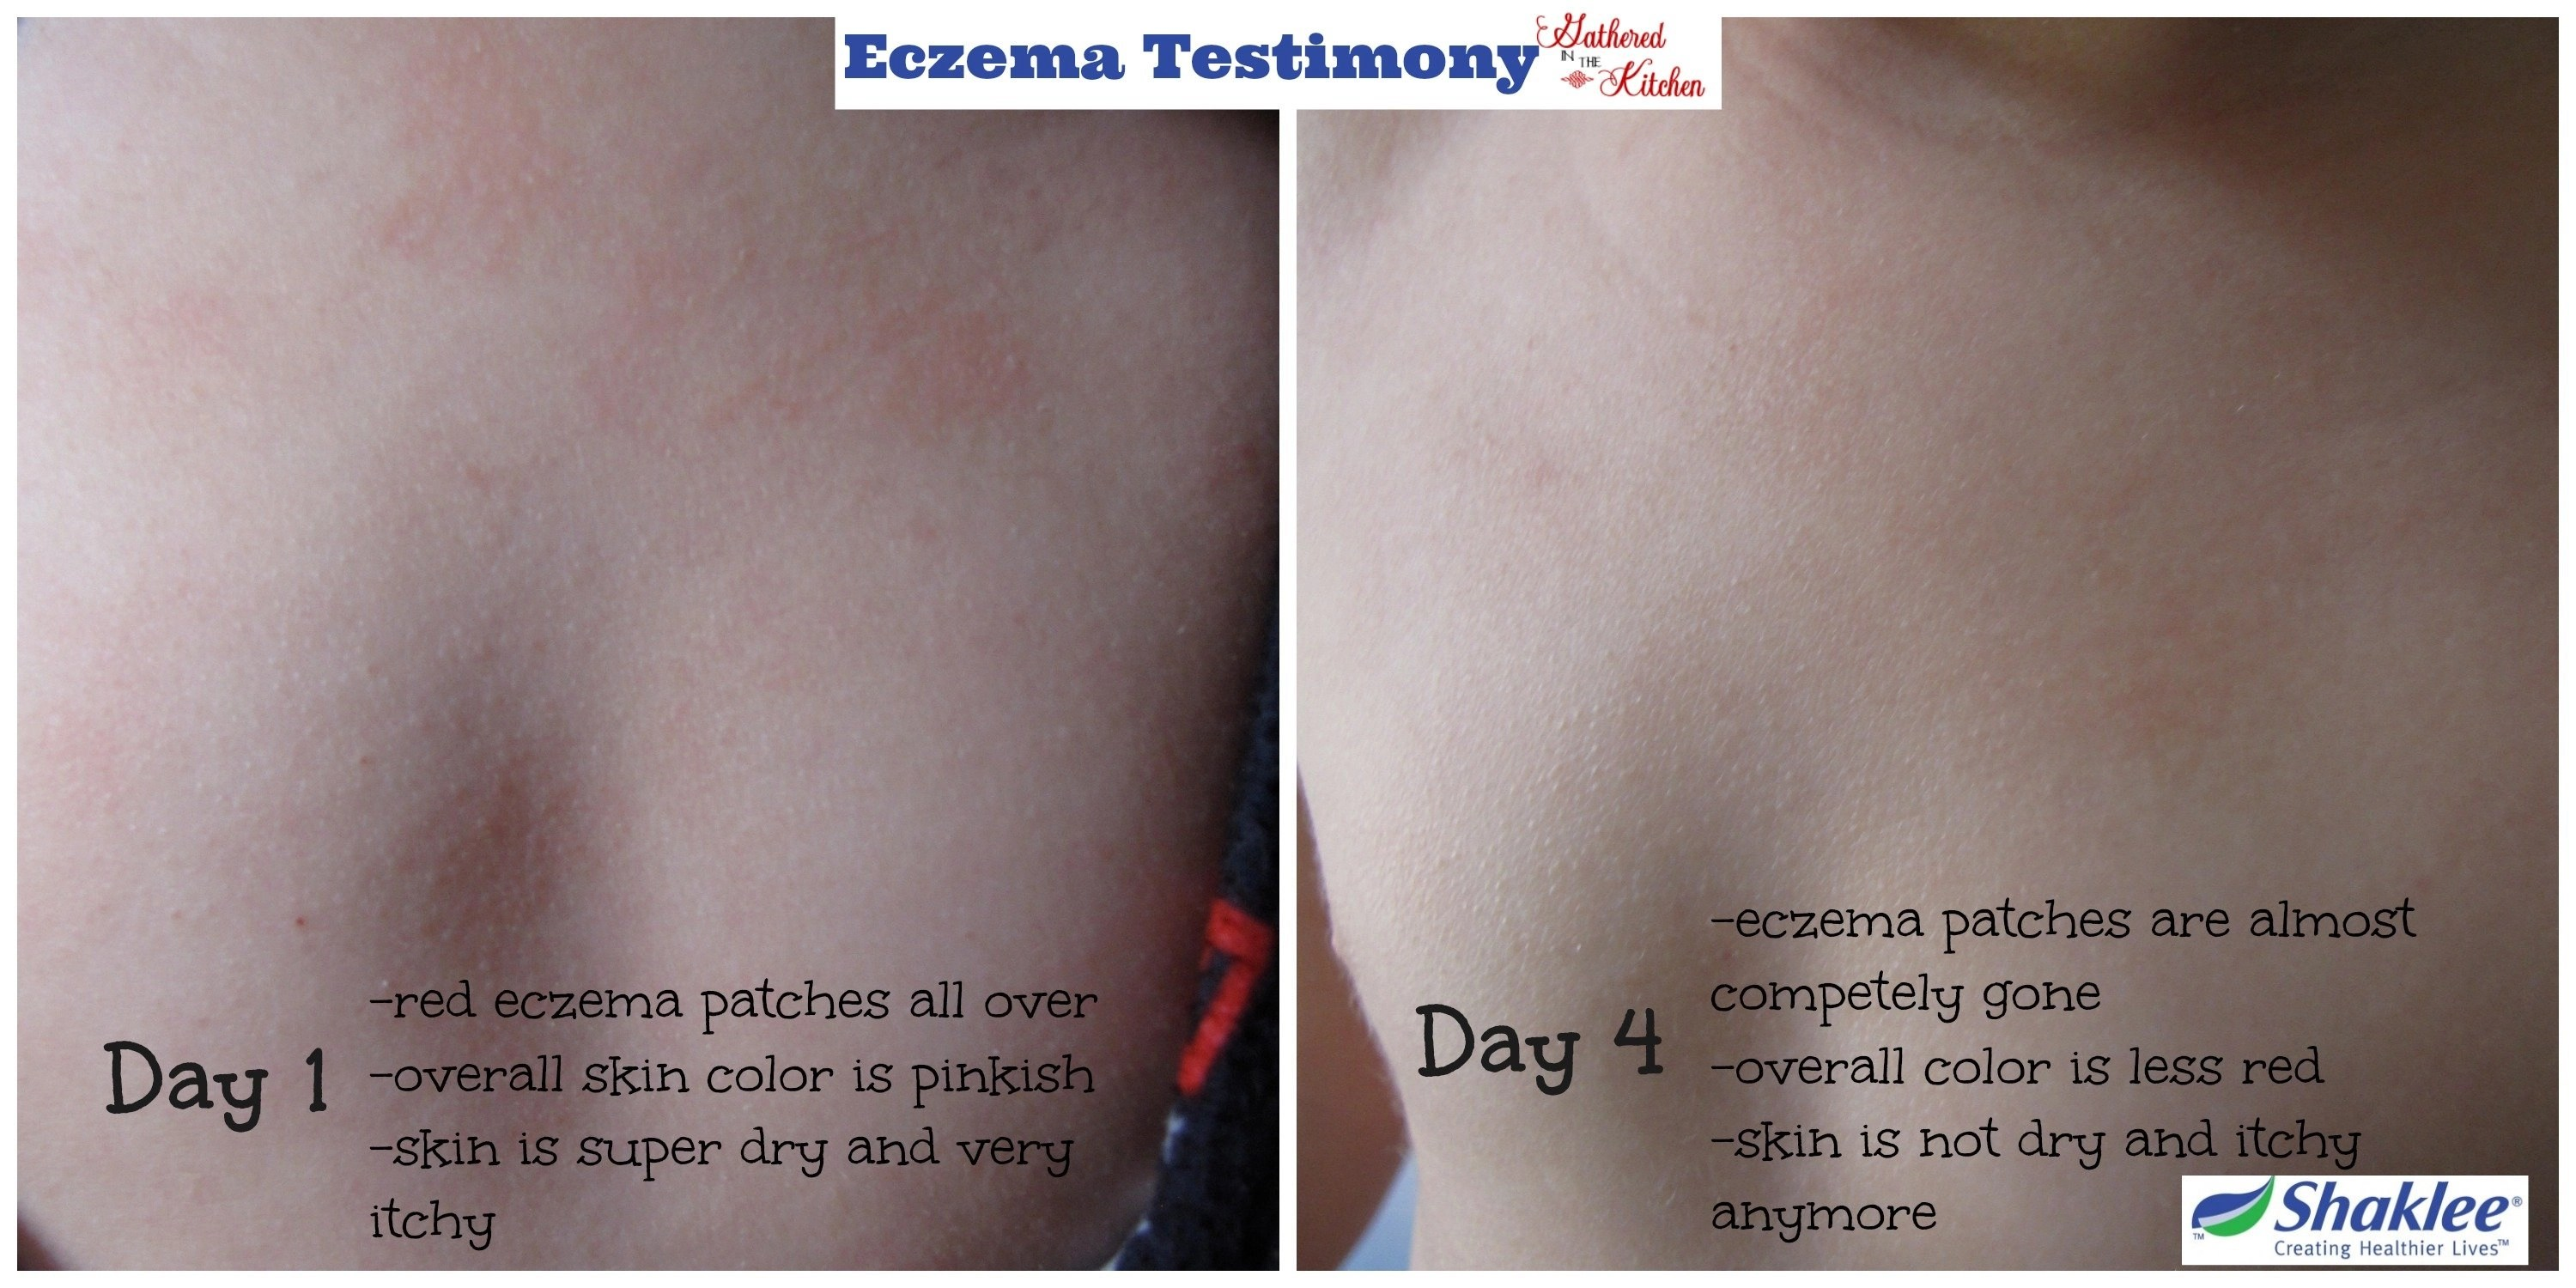 Shaklee Eczema Testimony: How To Heal Eczema Naturally